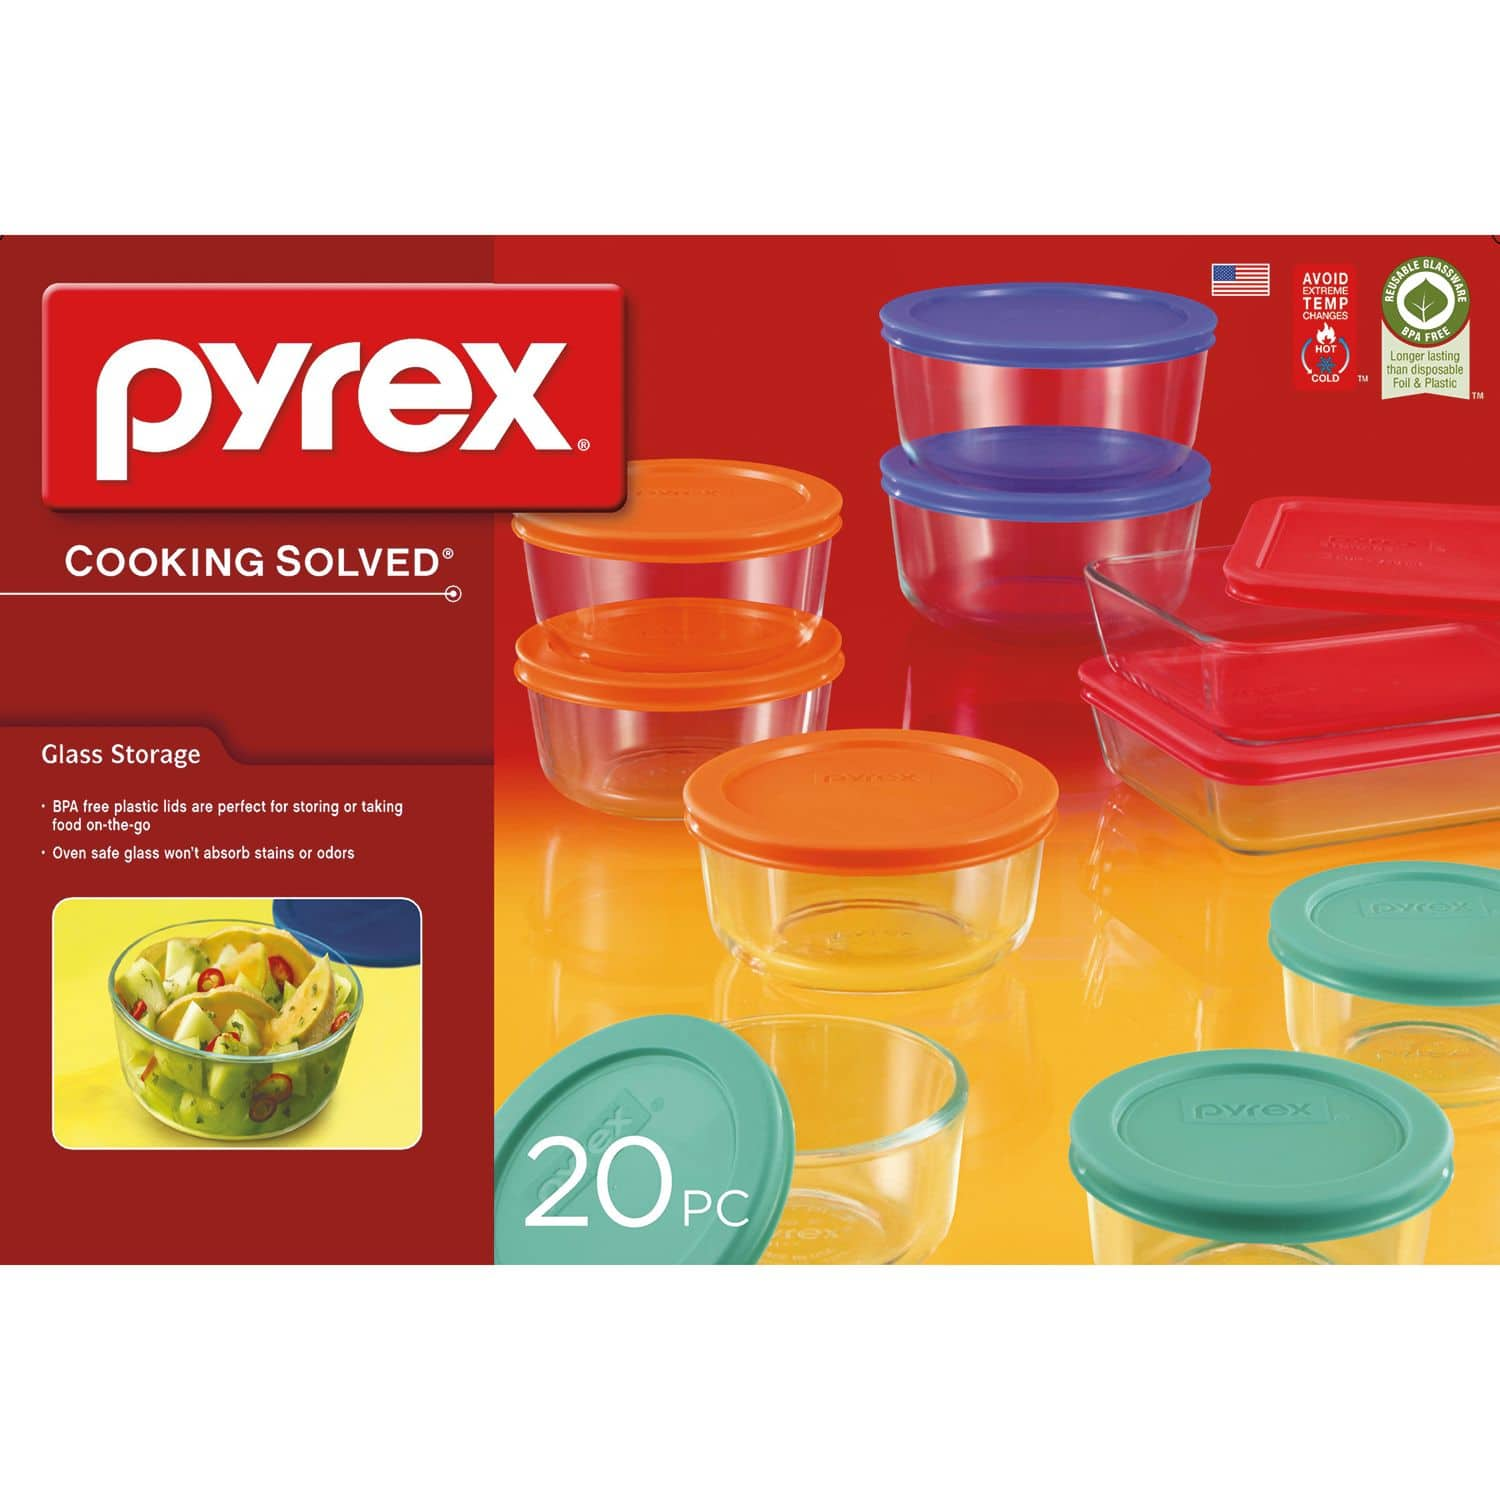 Sam's Club Members: 20-Piece Pyrex Glass Storage Set $14.98 + Free Shipping